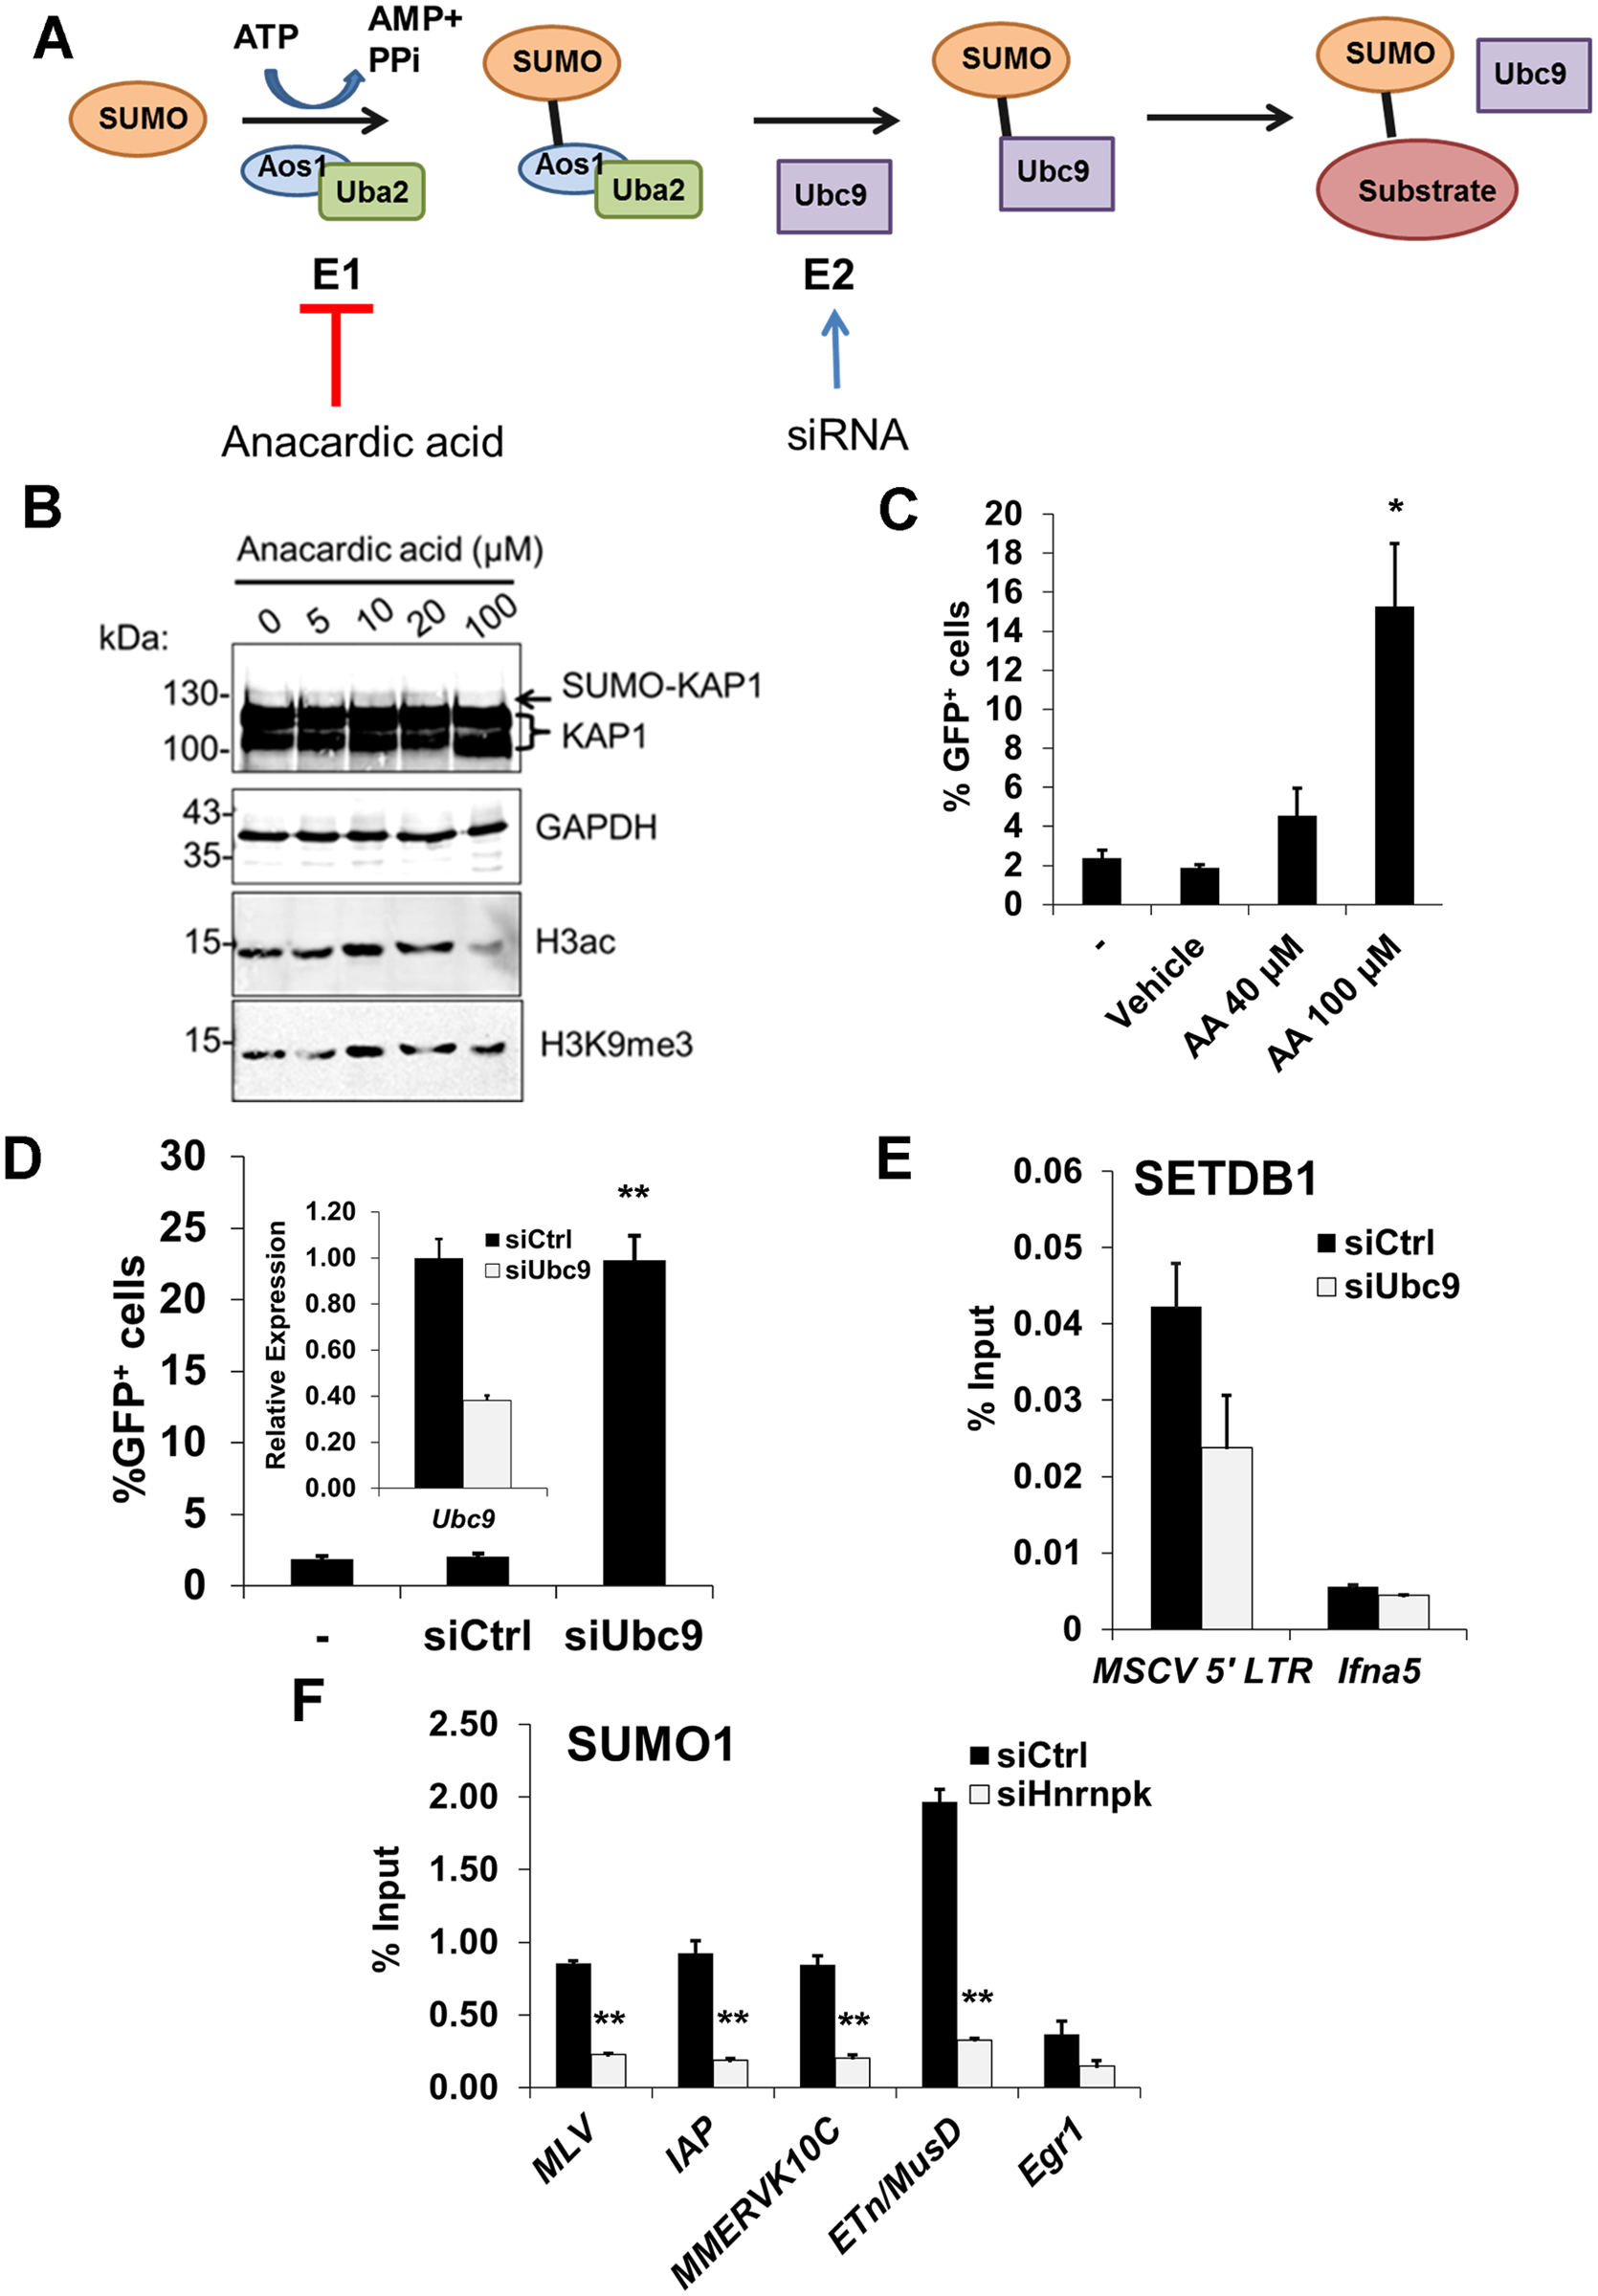 SUMOylation on proviral chromatin is required for SETDB1 recruitment and is compromised upon hnRNP K knockdown.